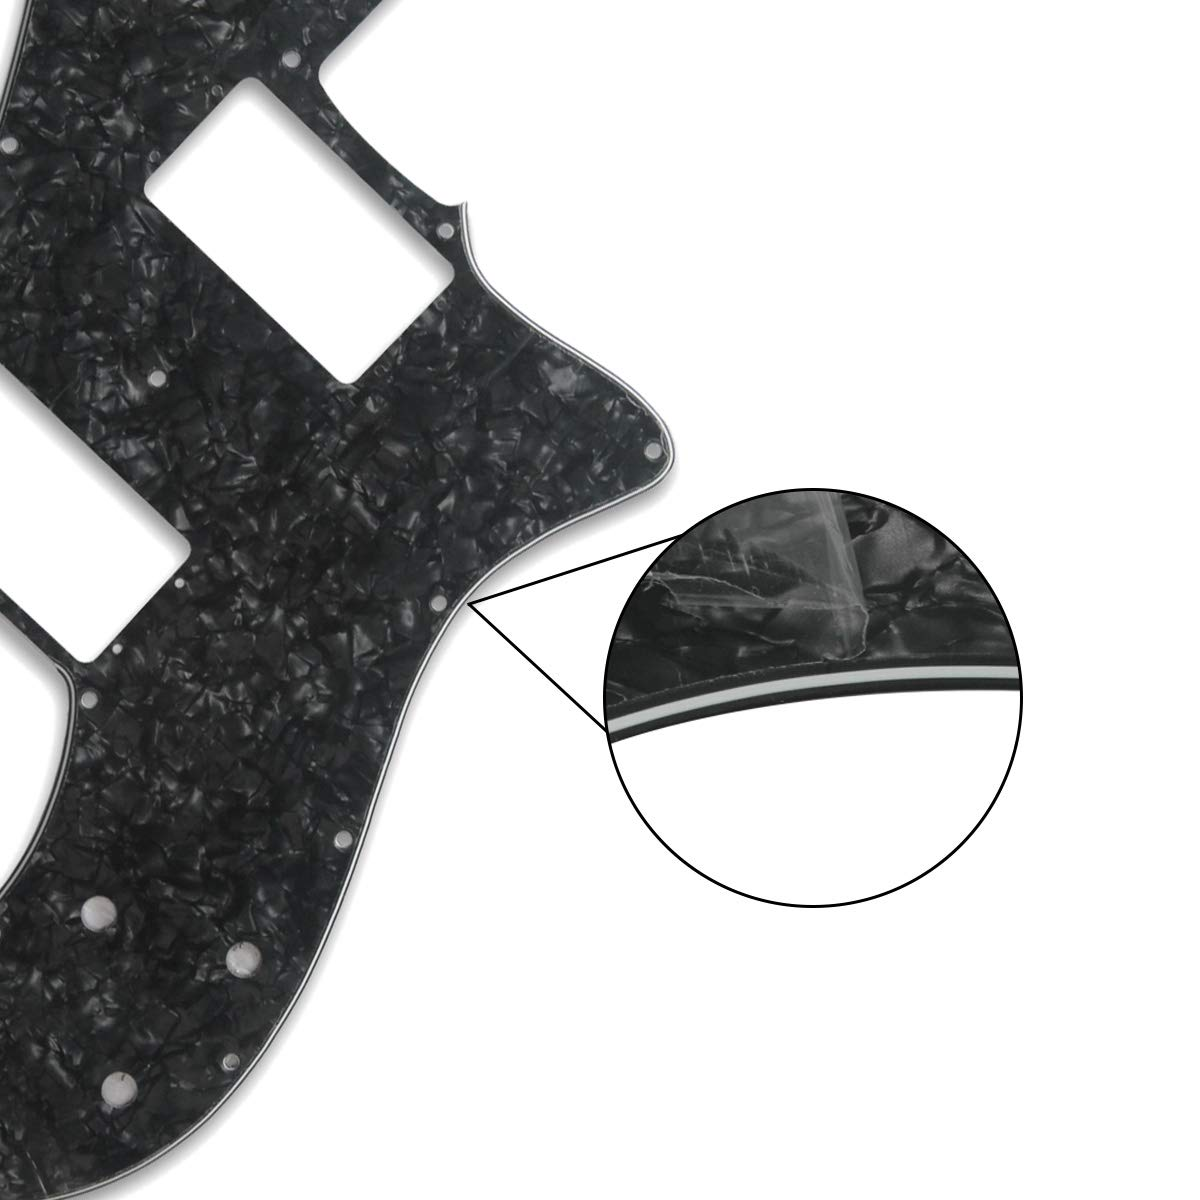 FLEOR 72 Thinline Pickguard Guitar Pick Guard Scratch Plate with Screws Fit Vintage Style 72 Telecaster Deluxe 14 Hole 4Ply Black Pearl